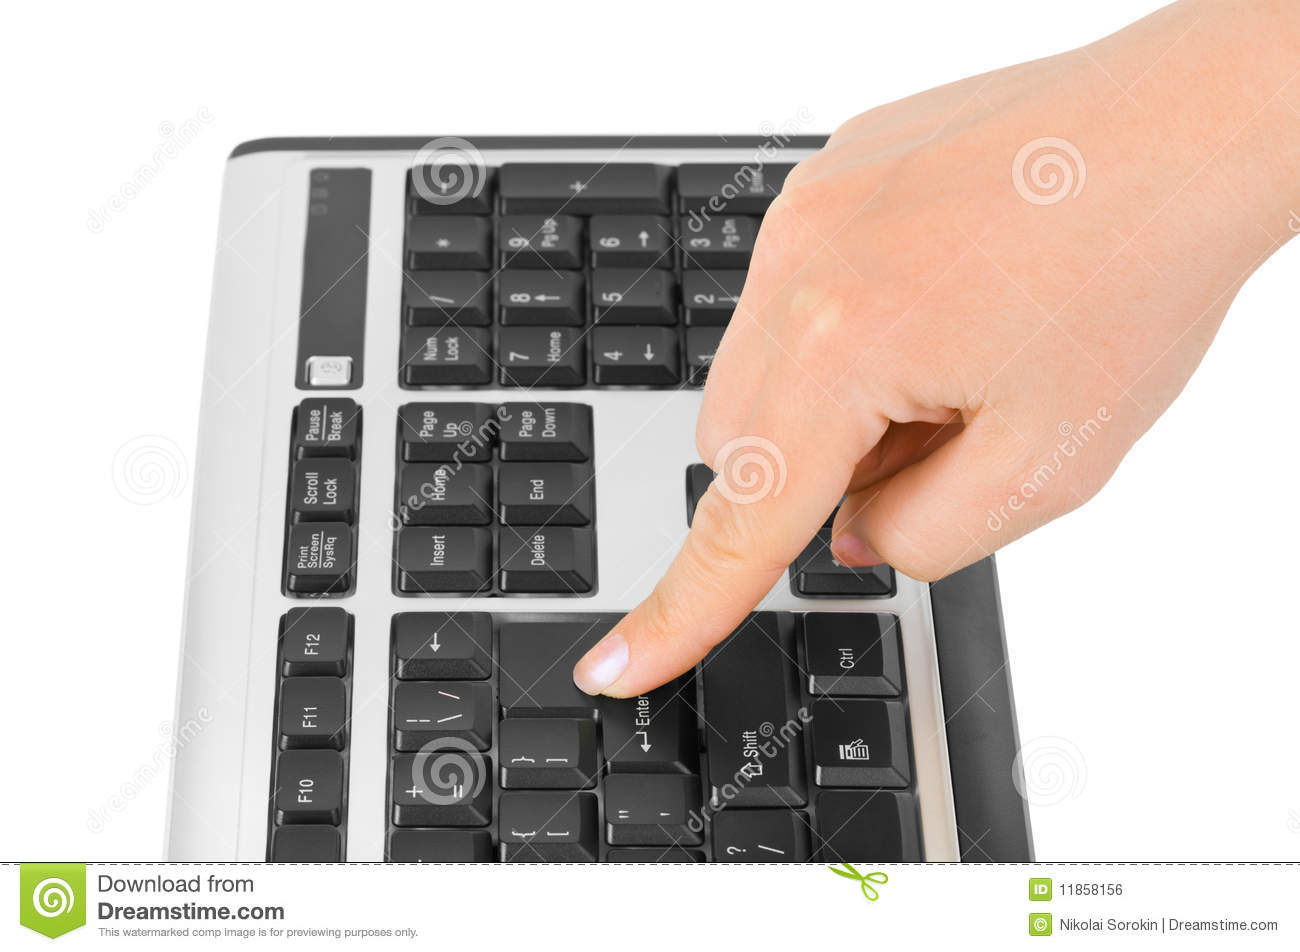 computer keyboard and hand royalty free stock image image 11858156. Black Bedroom Furniture Sets. Home Design Ideas